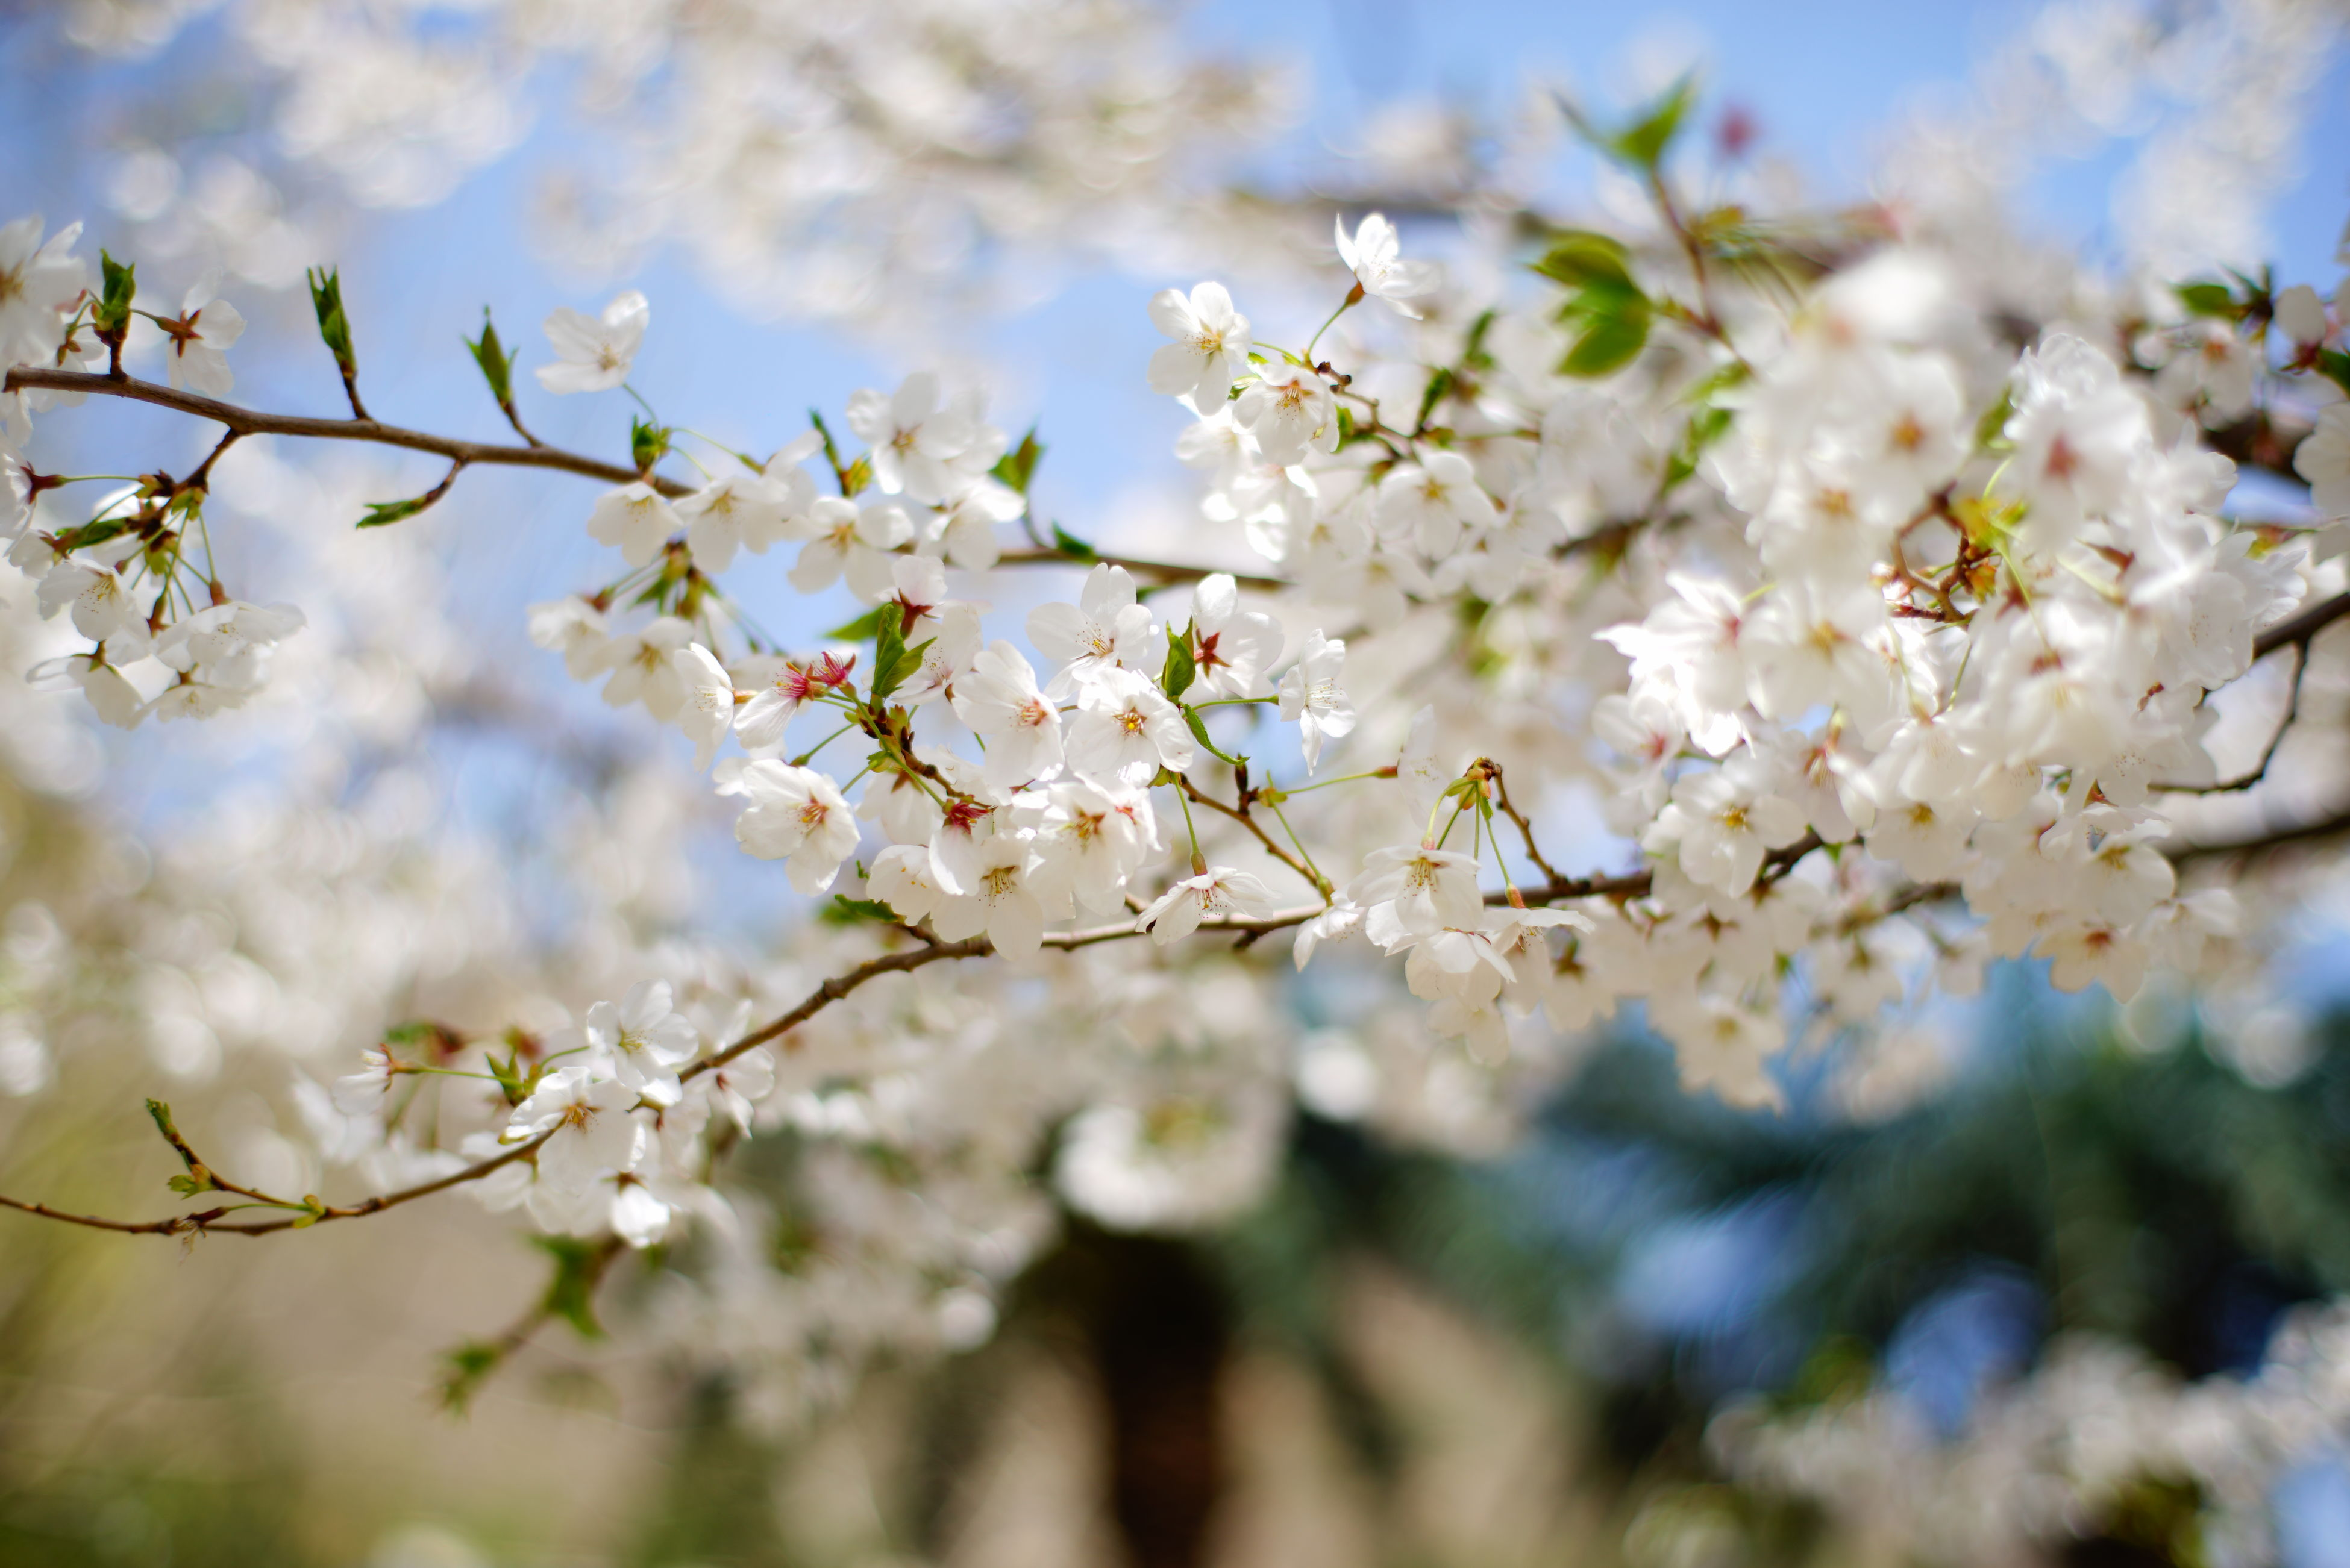 flower, freshness, growth, fragility, white color, cherry blossom, branch, tree, beauty in nature, blossom, nature, cherry tree, petal, apple blossom, focus on foreground, in bloom, apple tree, blooming, springtime, close-up